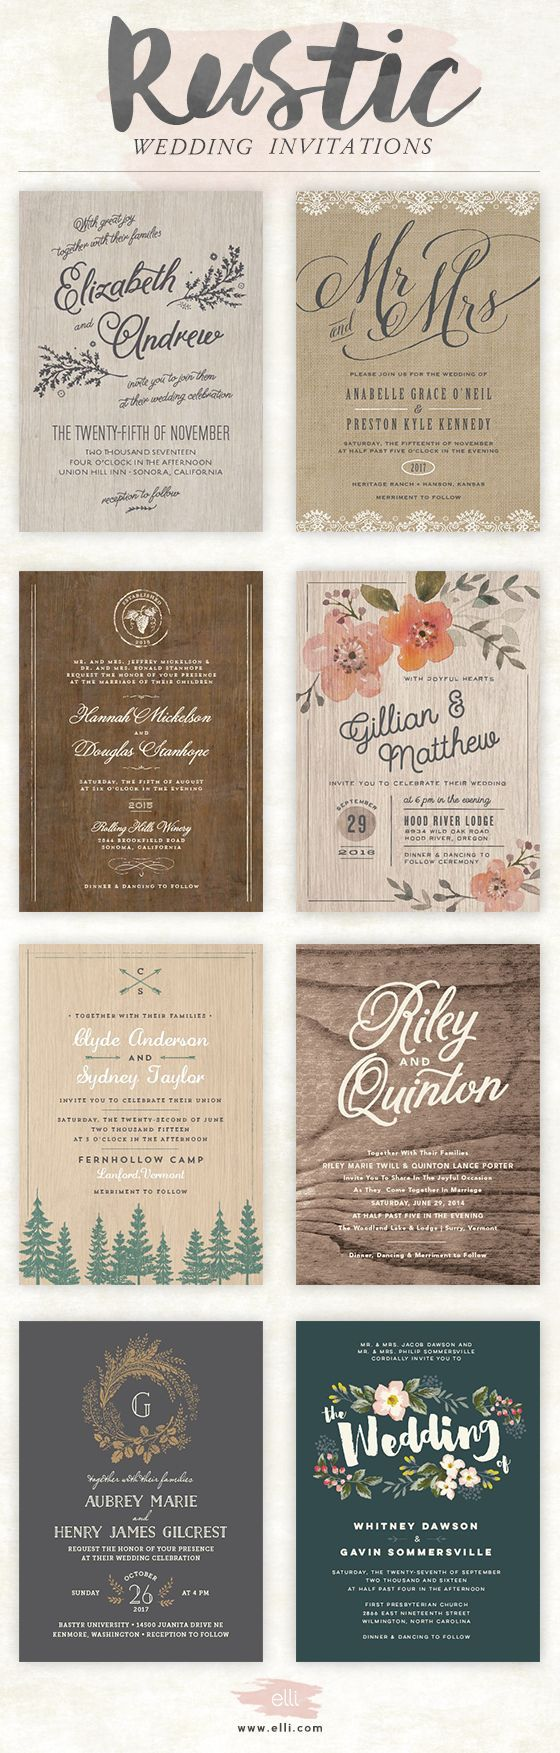 diamond wedding invitations%0A Rustic wedding invitations   bellacollina com   Bella Collina Weddings